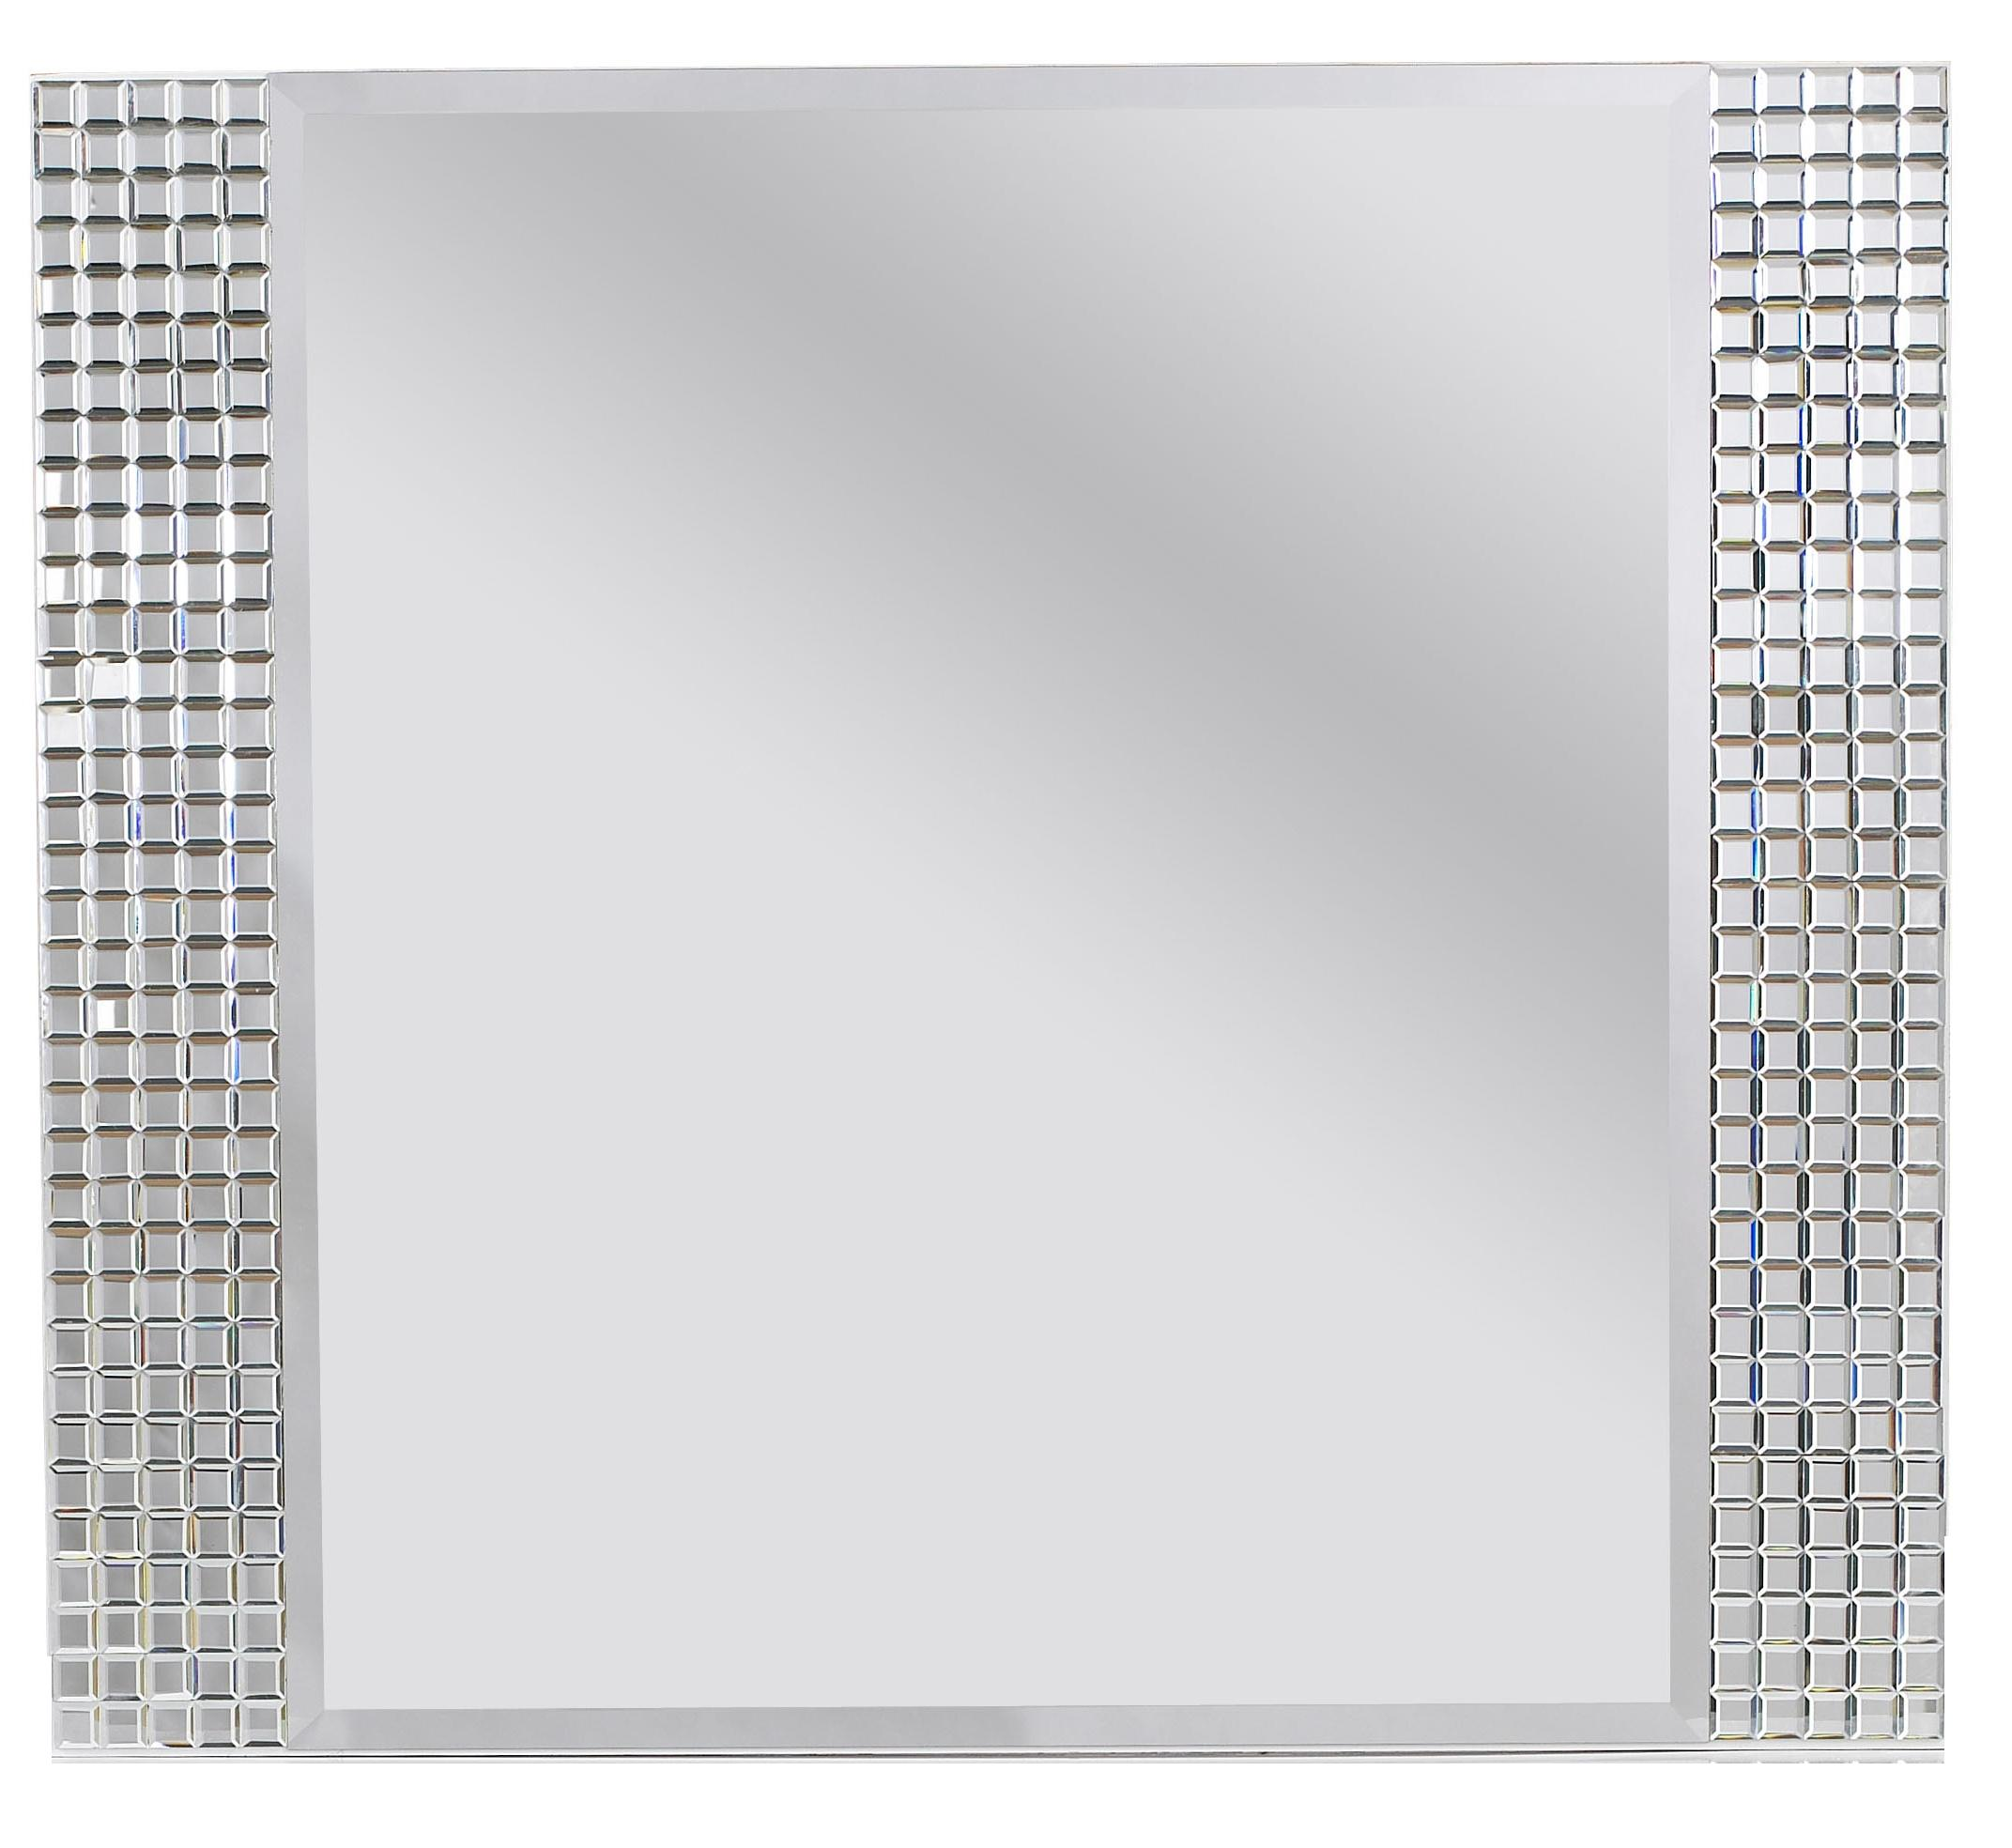 Standard Furniture Marilyn Youth Panel Mirror - Item Number: 66318